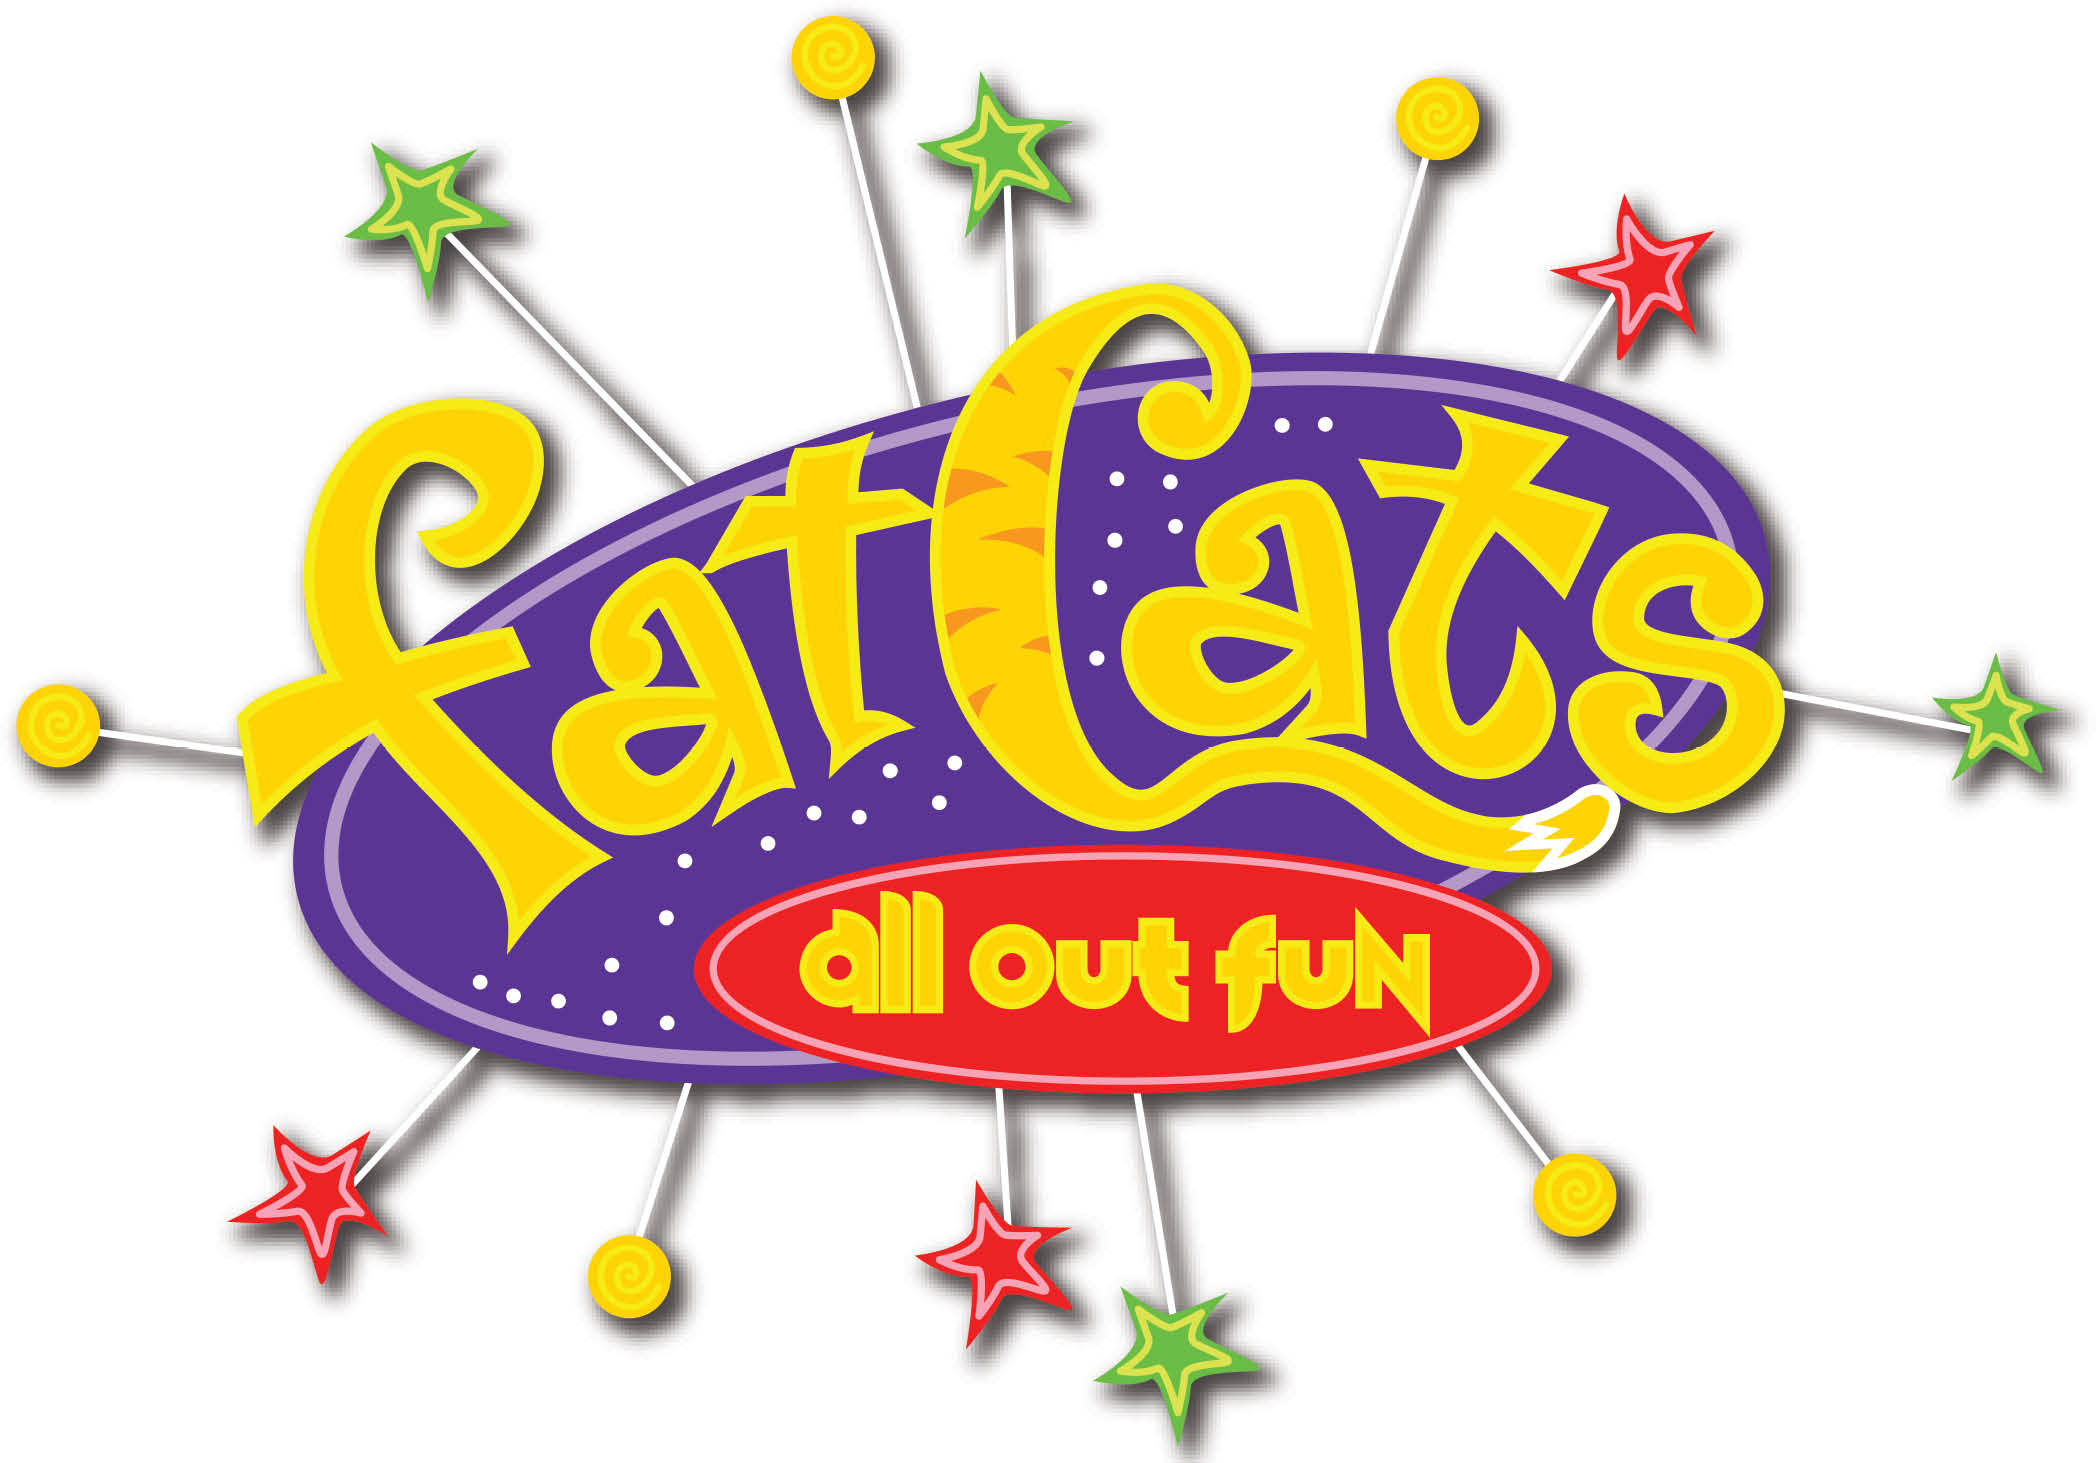 Lagoon Coupons, GetOut Pass Coupon, Fun Coupon, Cowabunga Coupons, Lagoon Coupons, Fat Cats Coupons